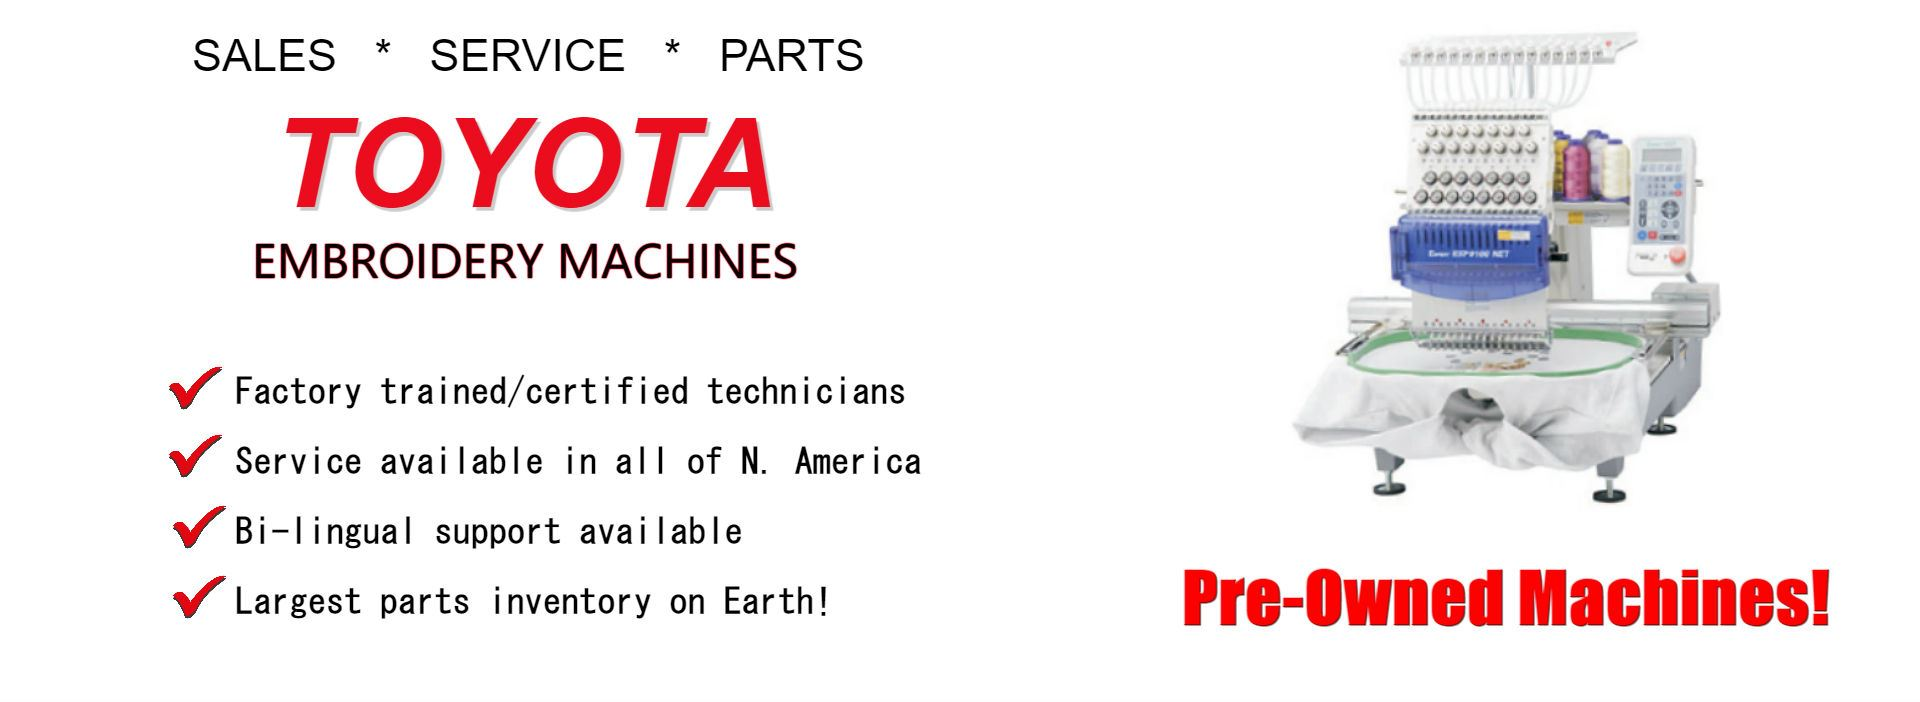 Toyota Embroidery Machines